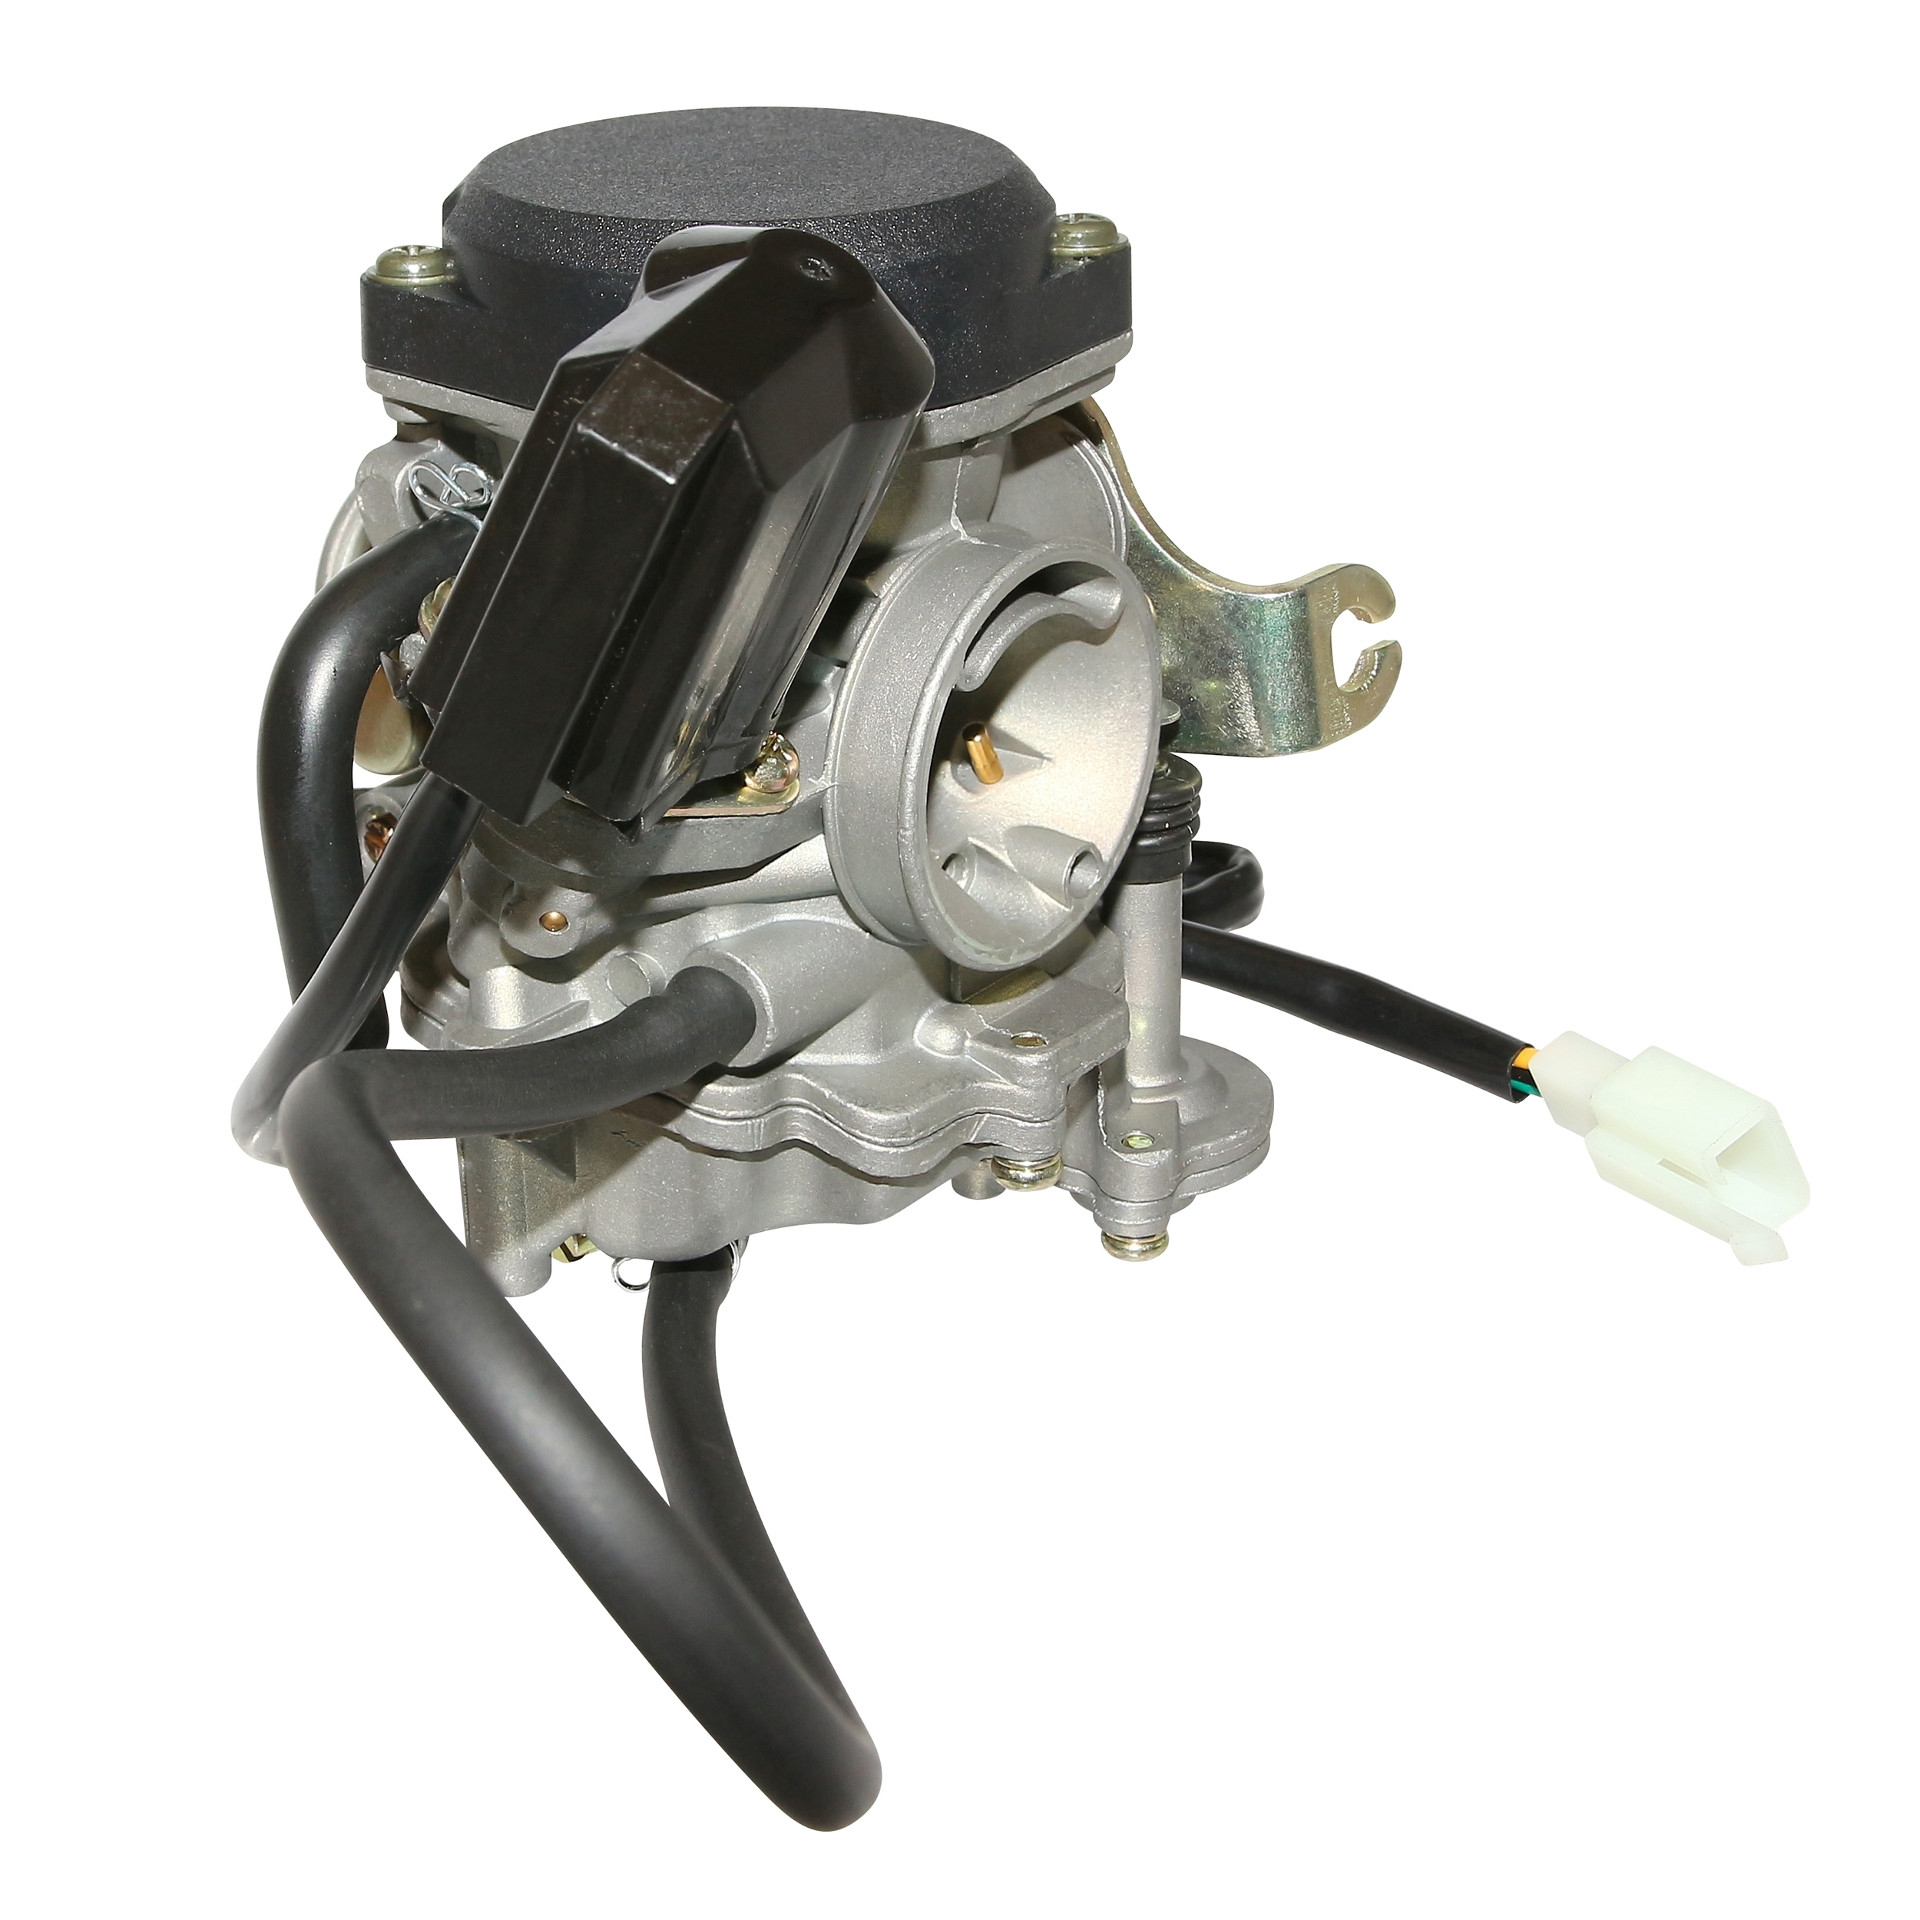 Carburateur 1Tek Origine 19 mm Scooter 50 chinois 4t gy6 139qmb